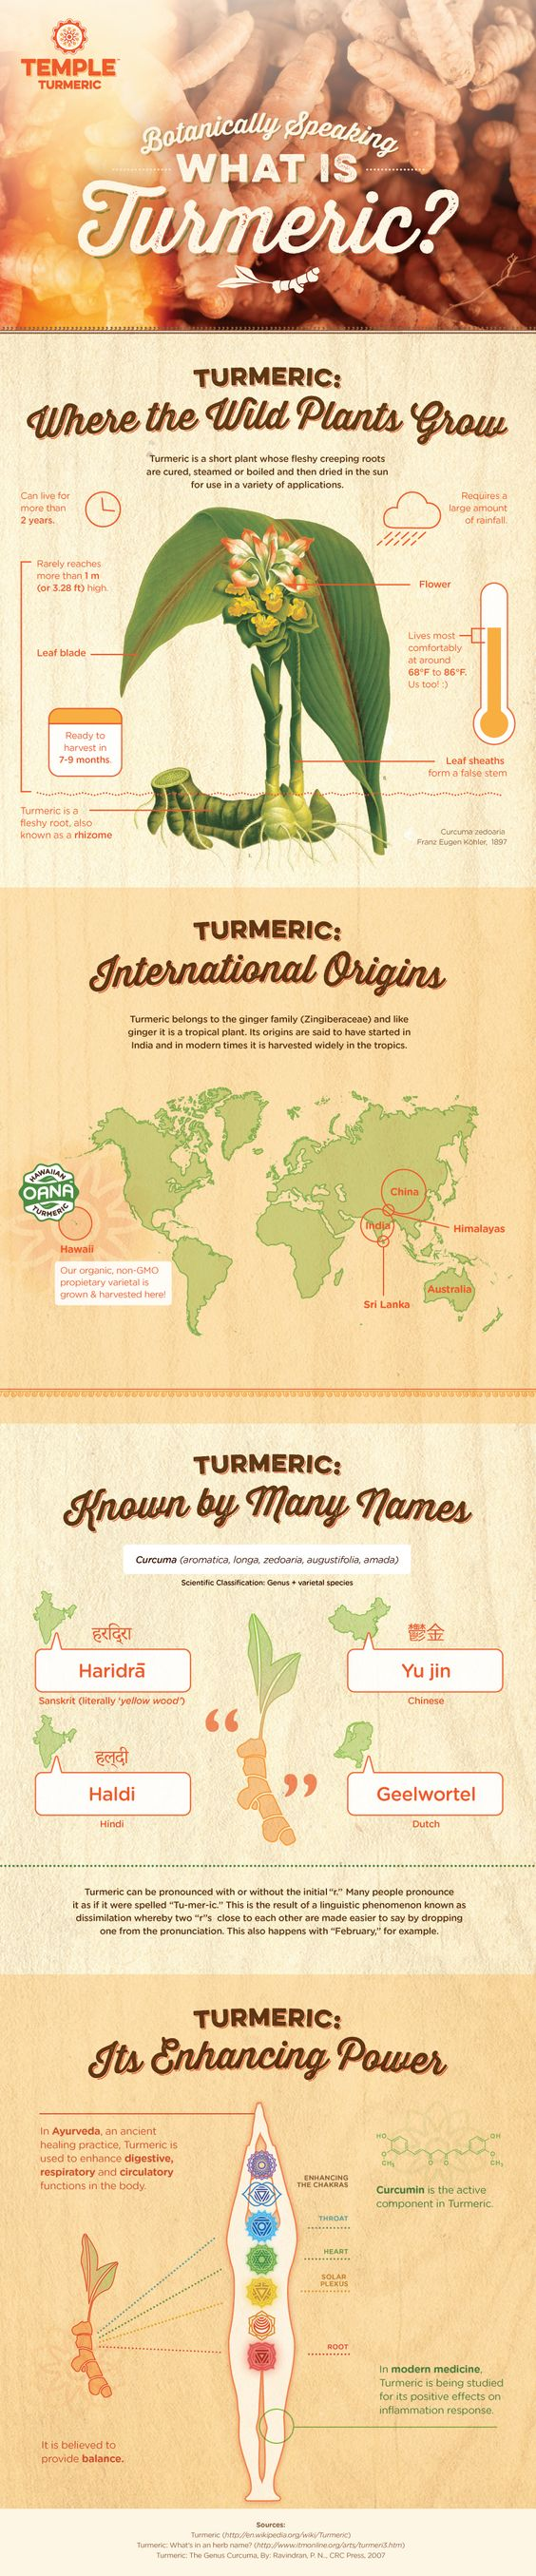 Botanically Speaking - What is Turmeric?  | Temple Turmeric: